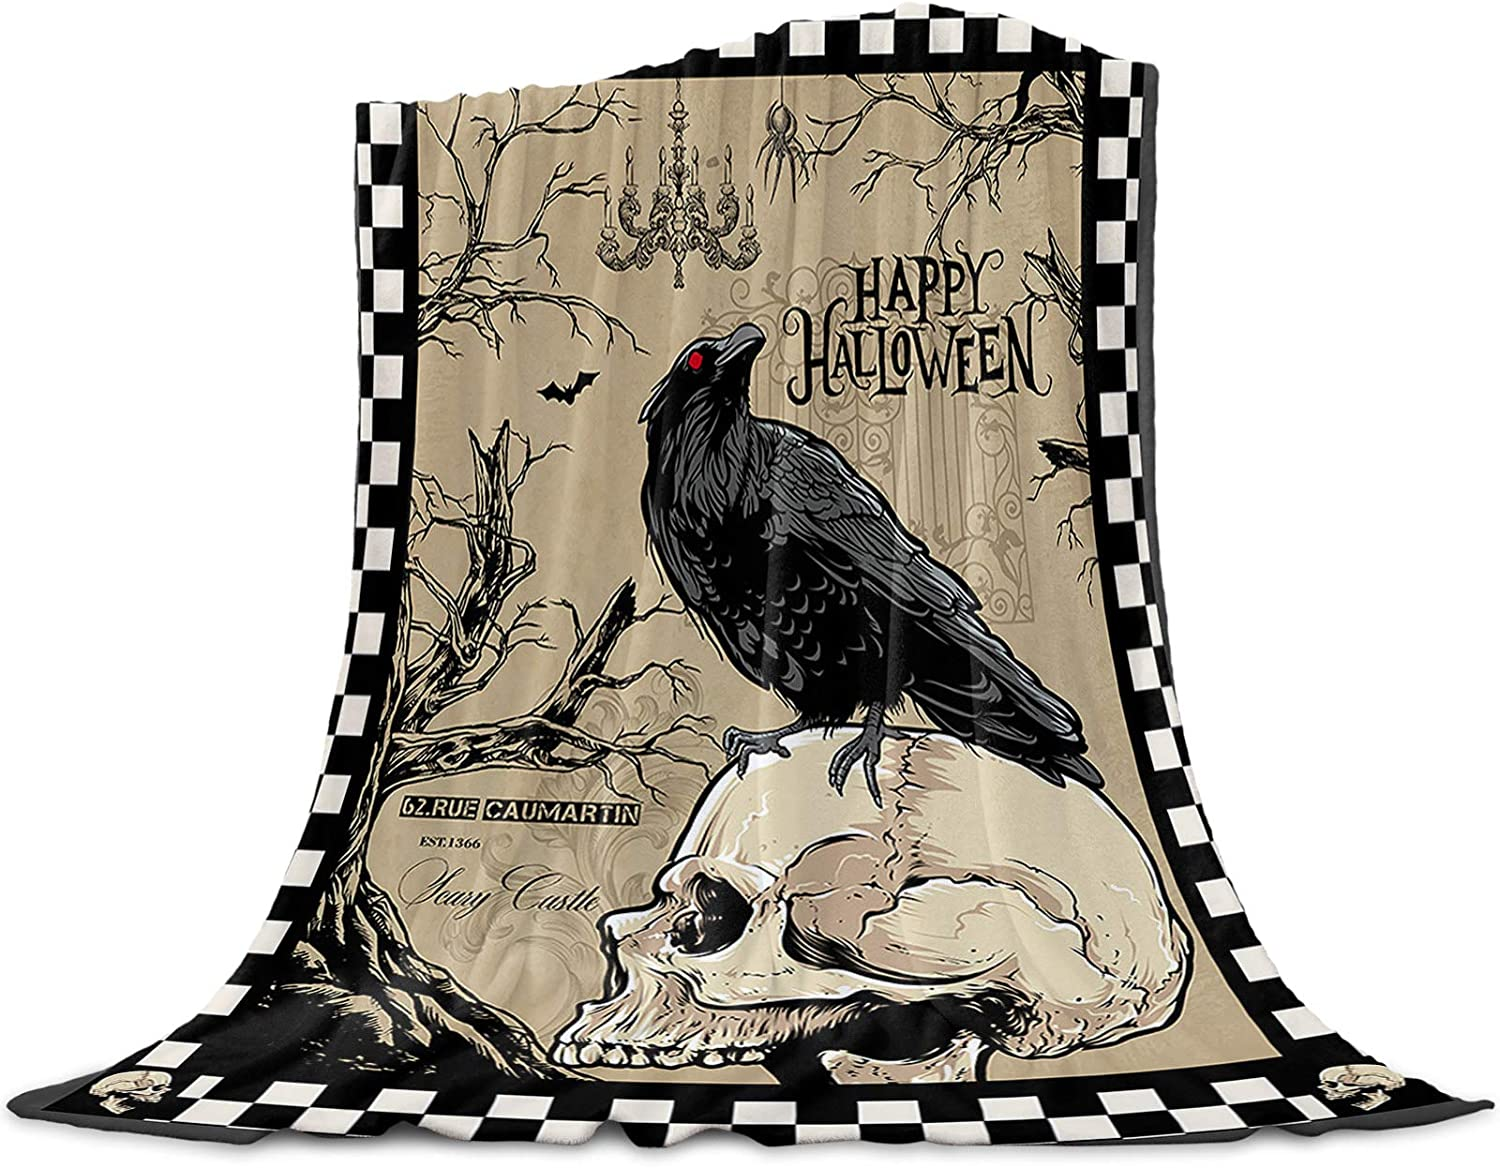 Bloomhouse Max 54% OFF Halloween Throw Blankets Regular dealer Soft and Co Warm Fuzzy Plush